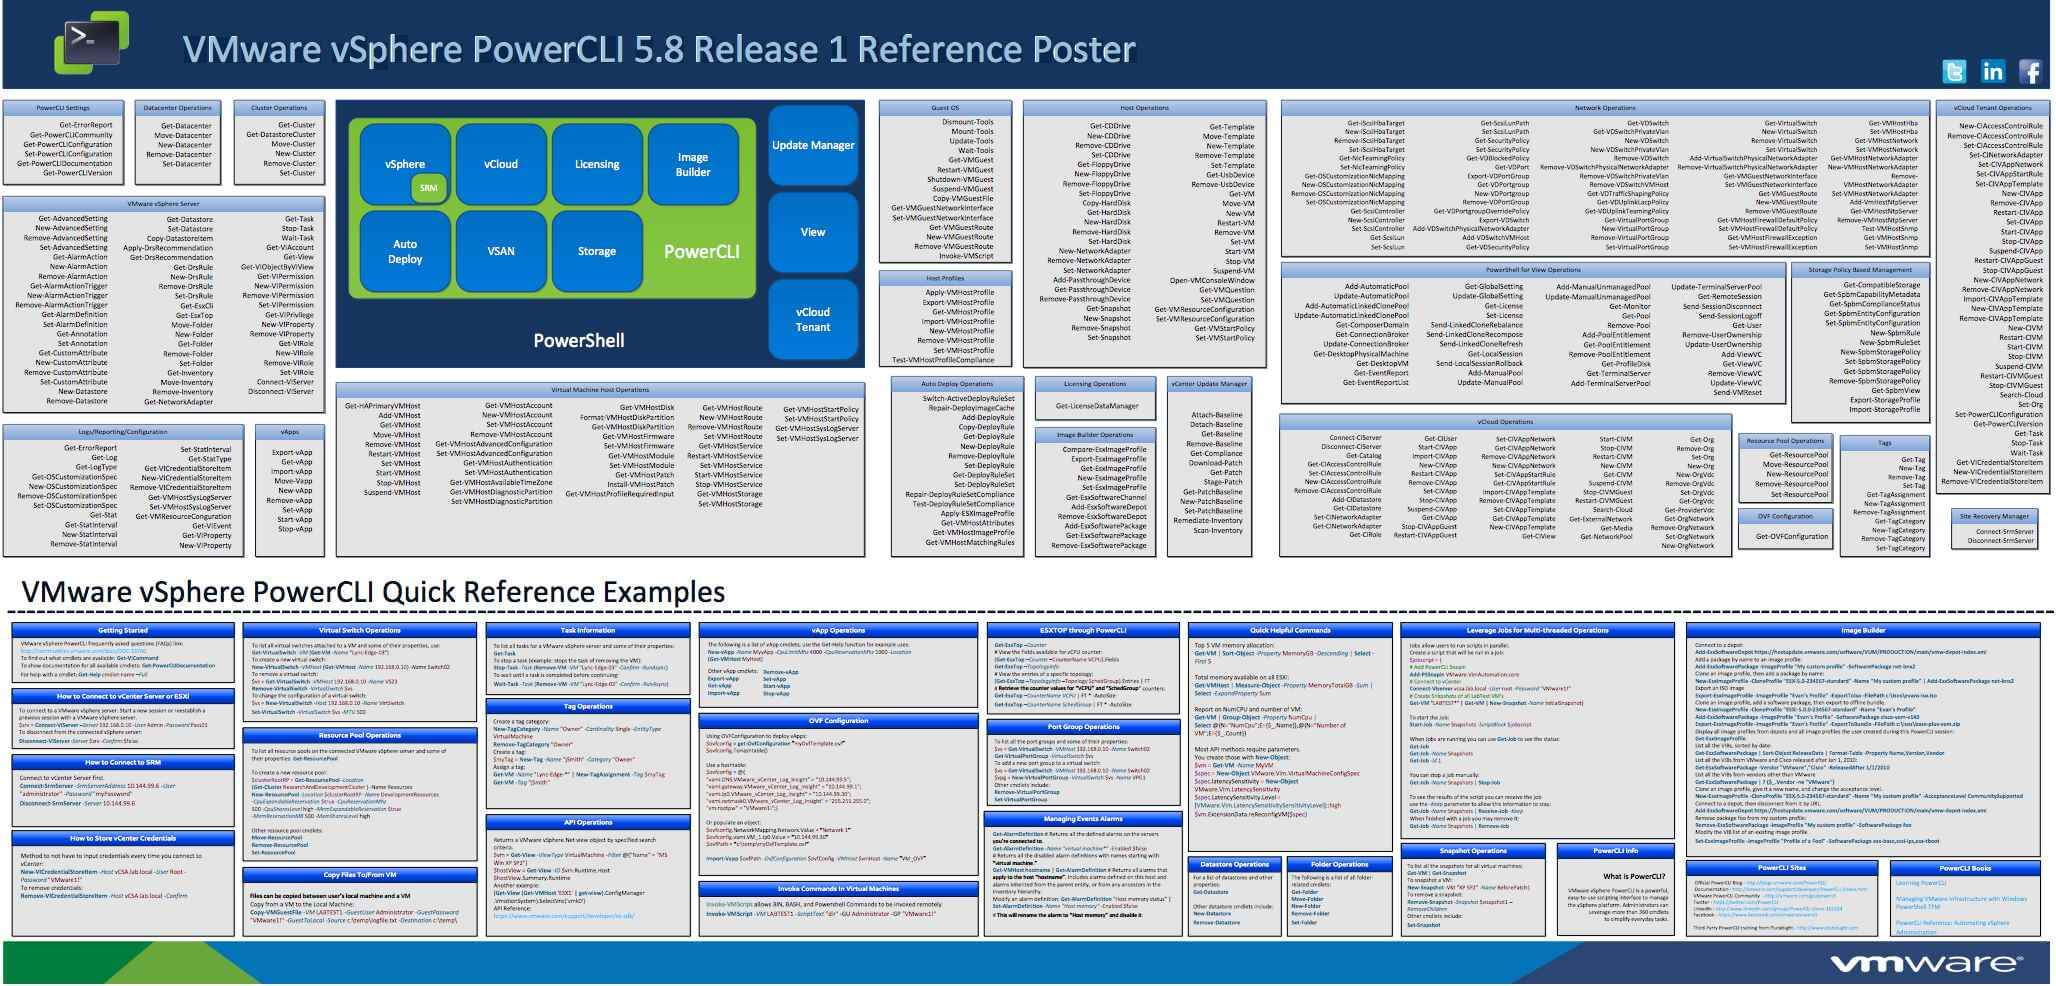 Вышел VMware vSphere PowerCLI 5.8 Release 1 Reference Poster